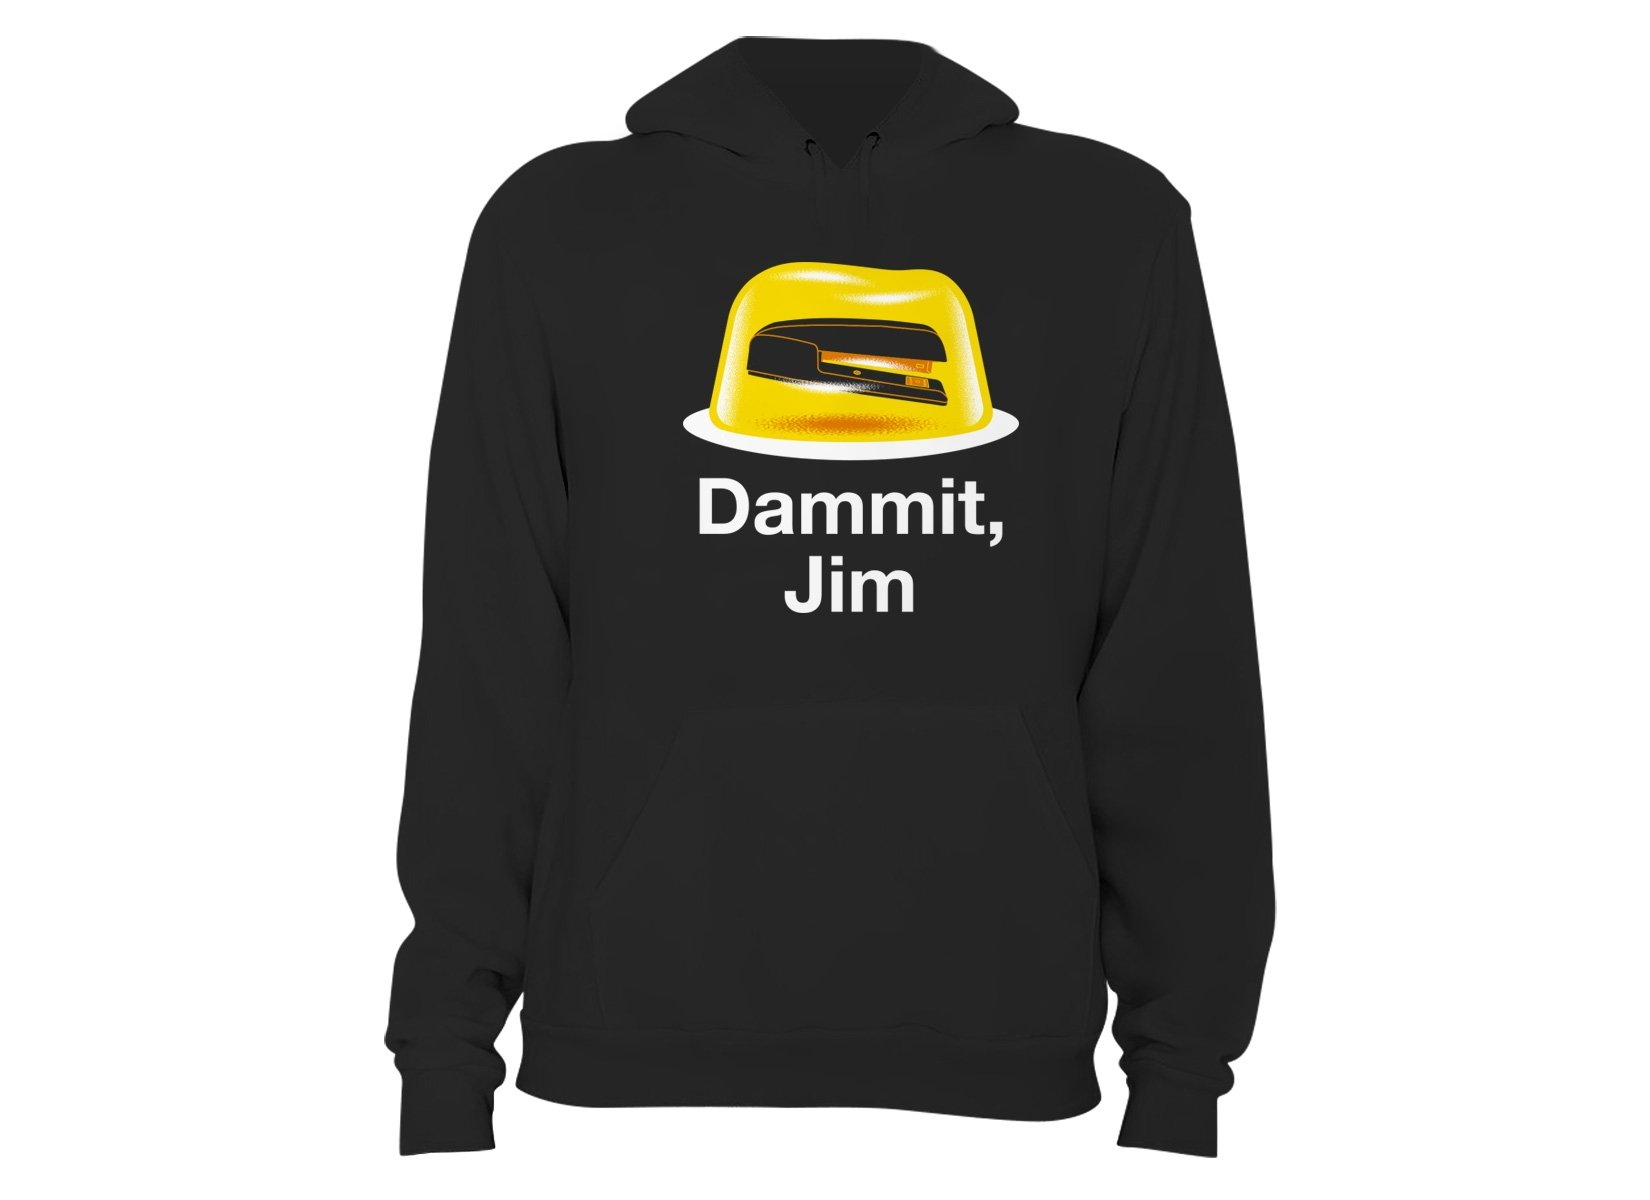 Dammit, Jim on Hoodie